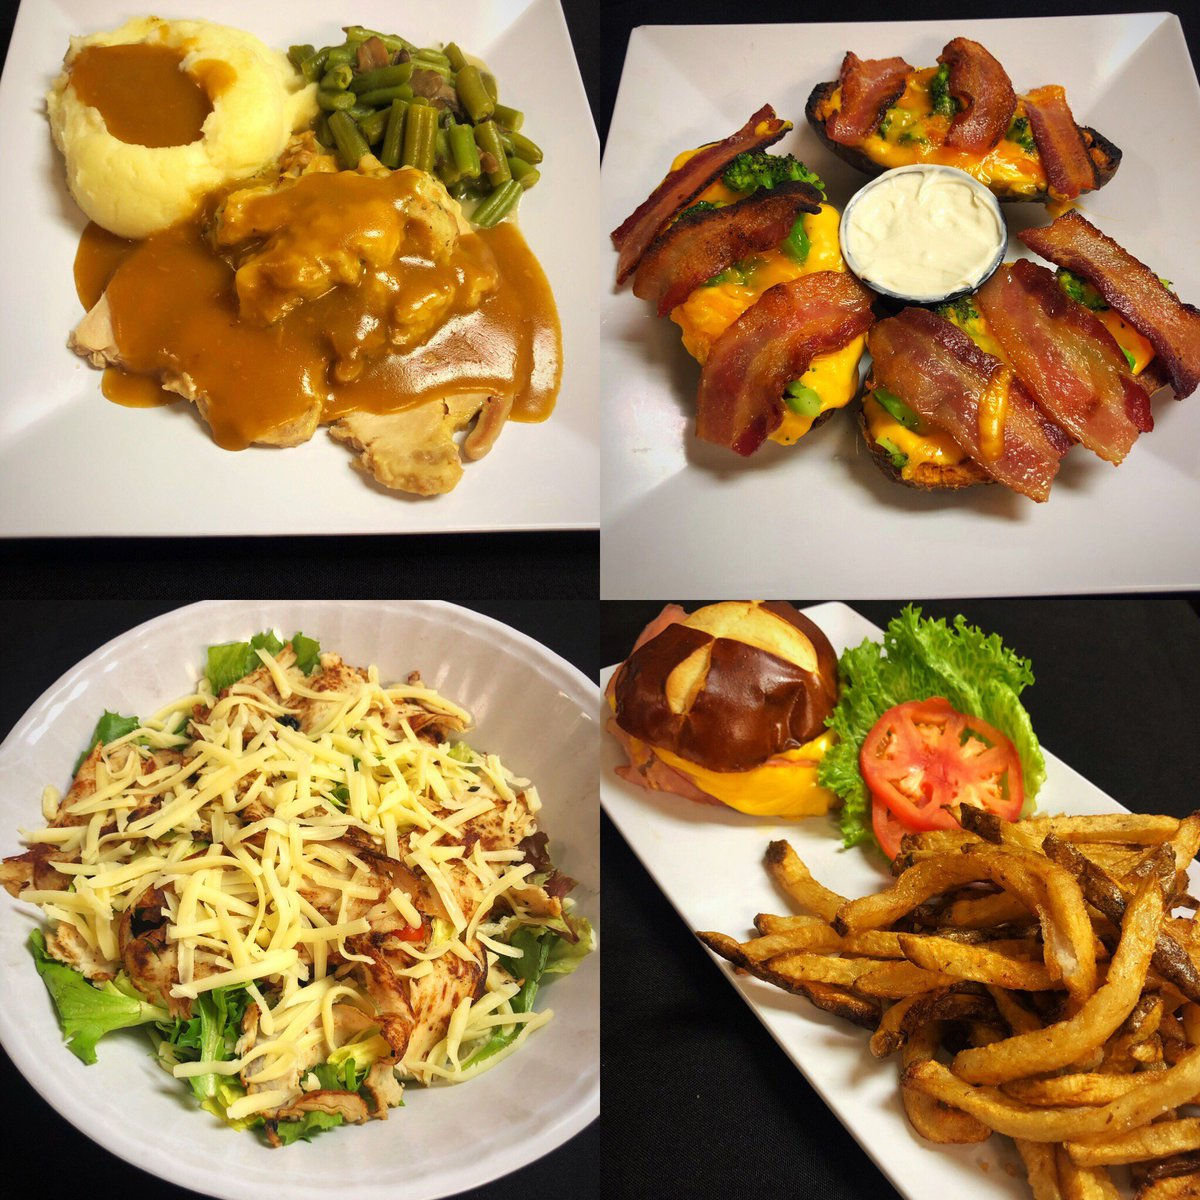 $7.99 Lunch Specials until 8pm #lunch #eat https://t.co/A97BluXdEu